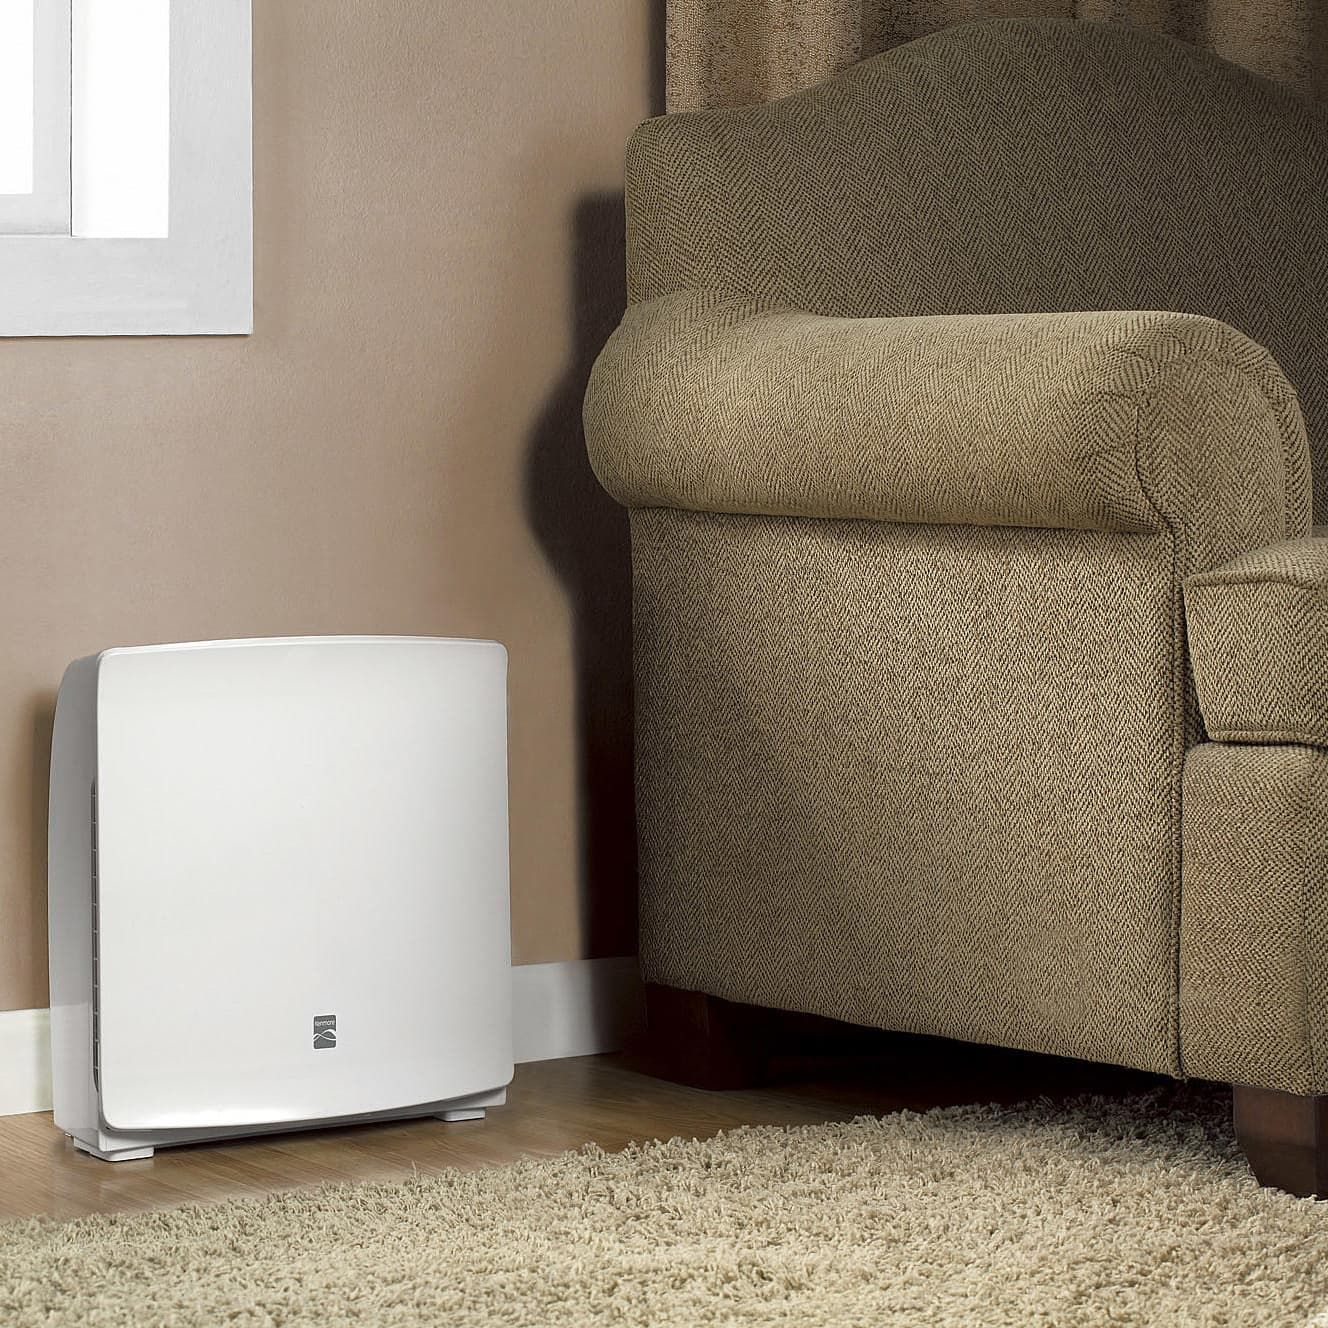 The Best Air Purifiers You Can Buy Right Now Home air